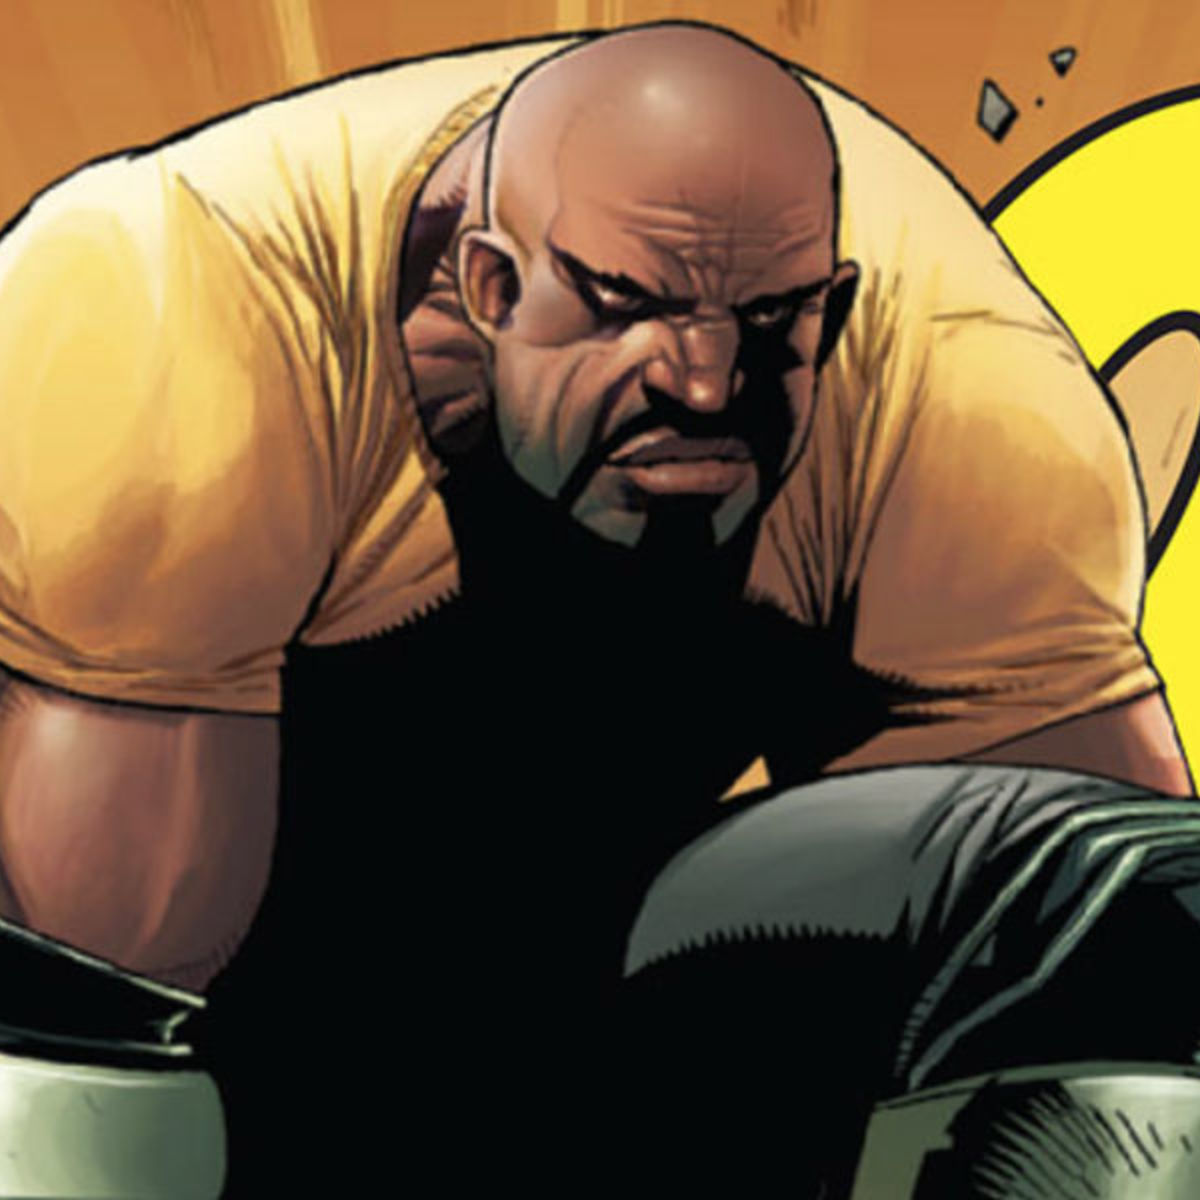 Luke-Cage-Marvel-Yellow-Shirt.jpg